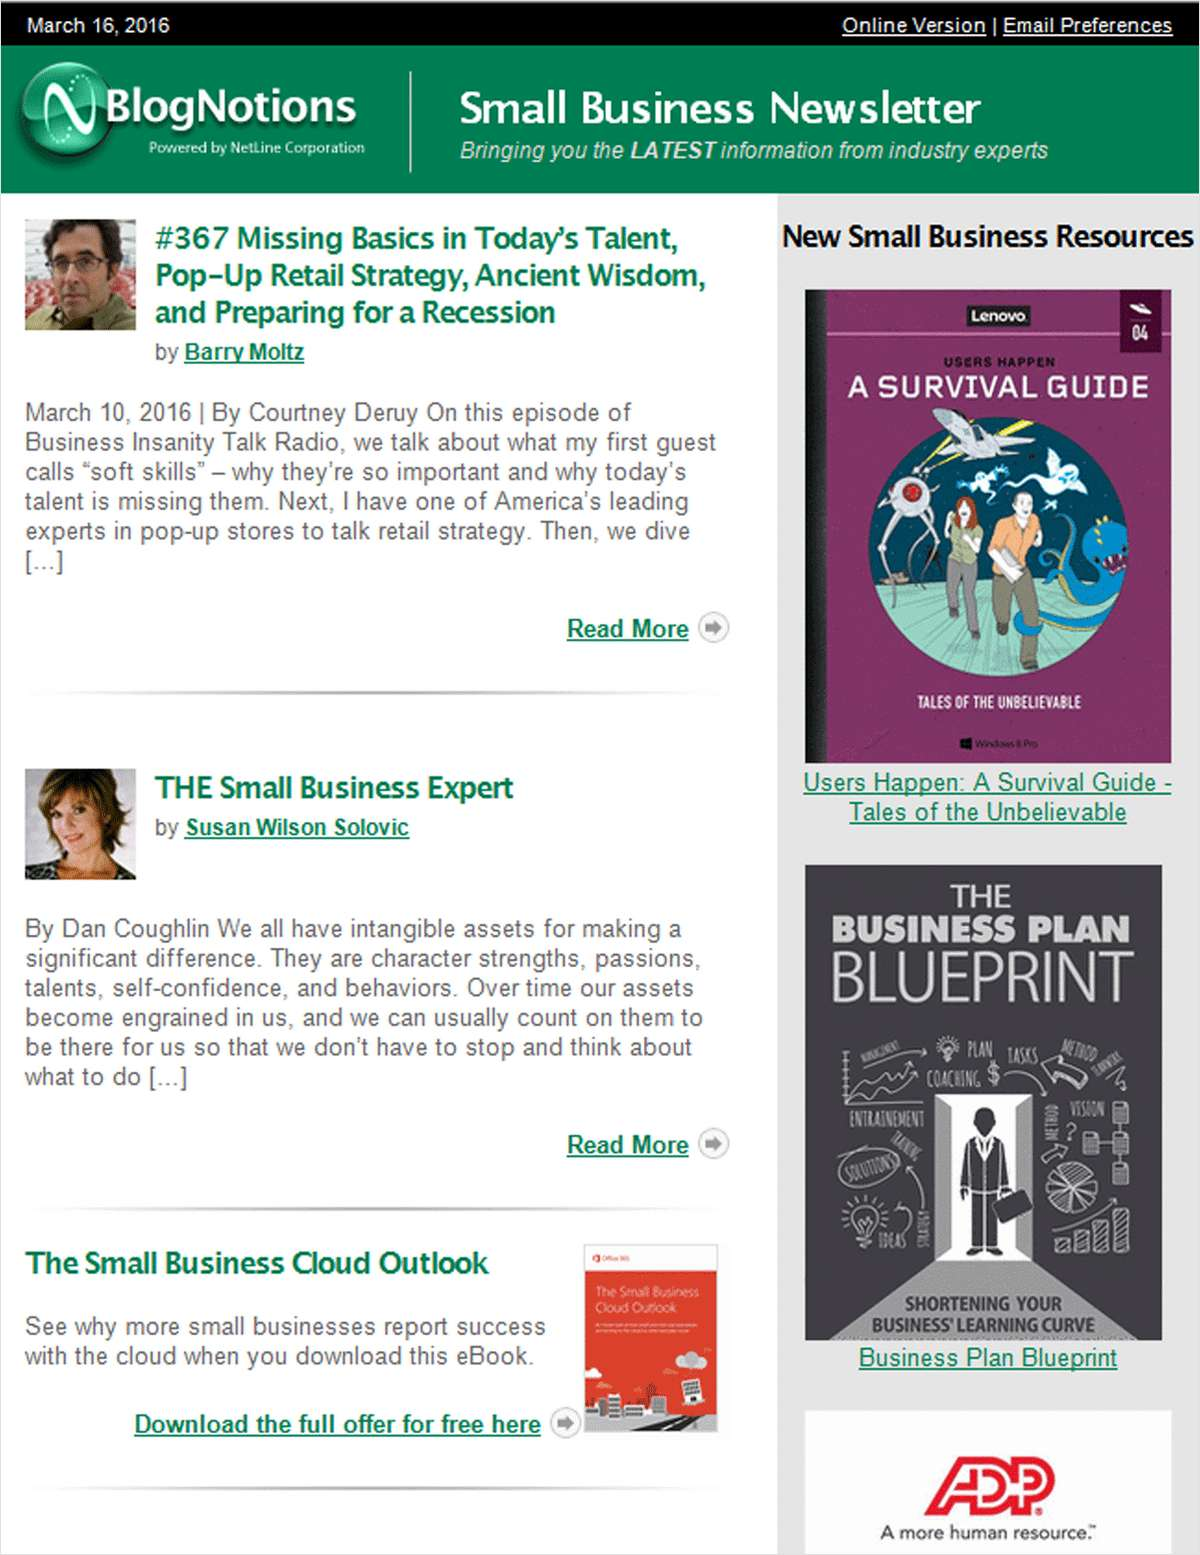 BlogNotions Small Business Newsletter: Monthly eNewsletter Featuring Blogs from Industry Experts